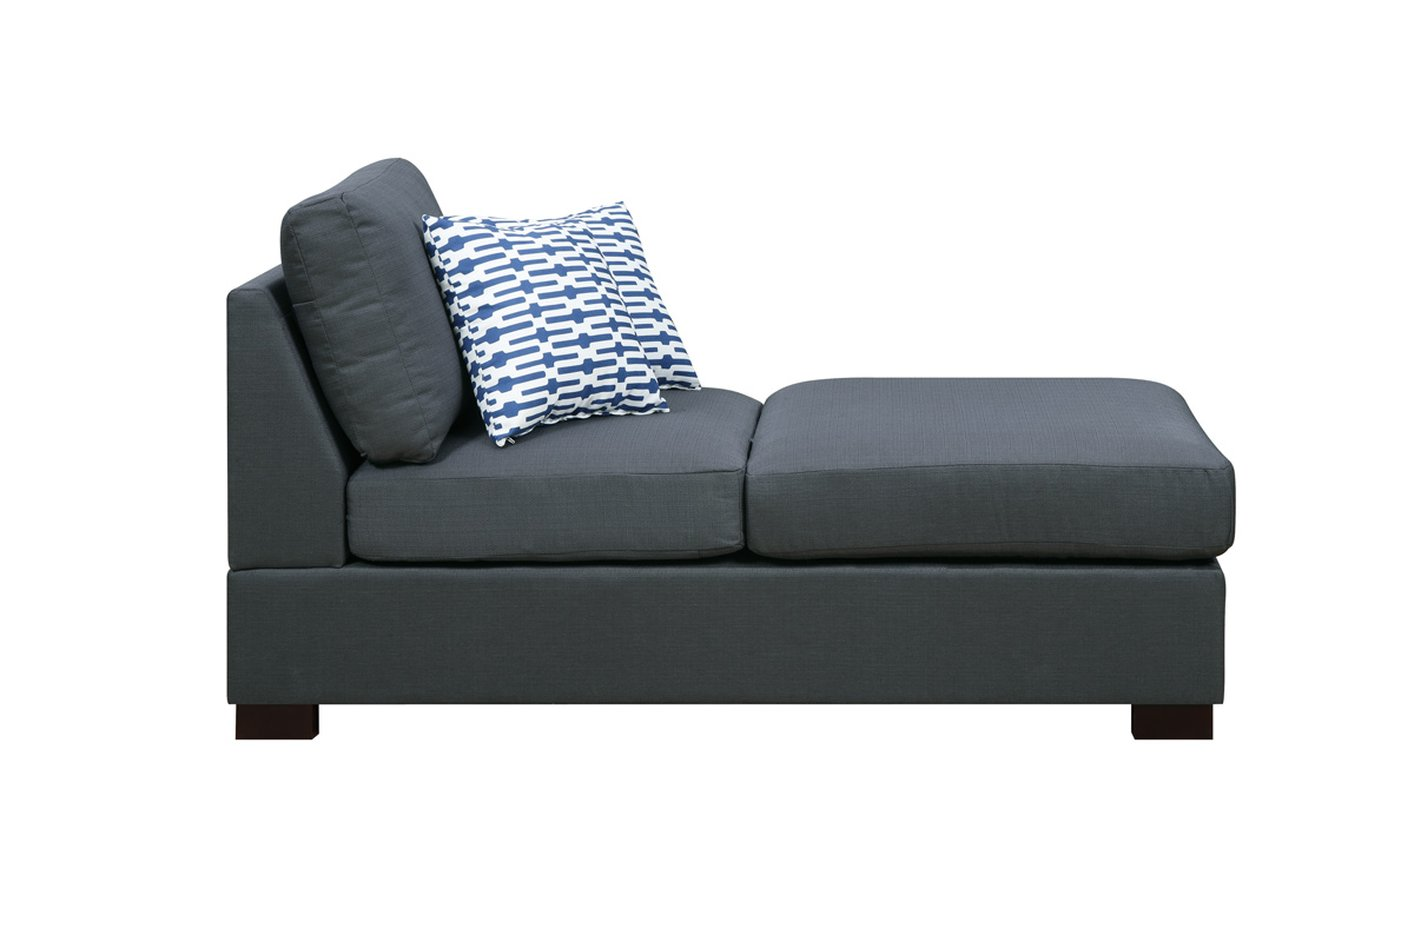 poundex camille f7990 black fabric chaise lounge steal a sofa furniture outlet los angeles ca. Black Bedroom Furniture Sets. Home Design Ideas